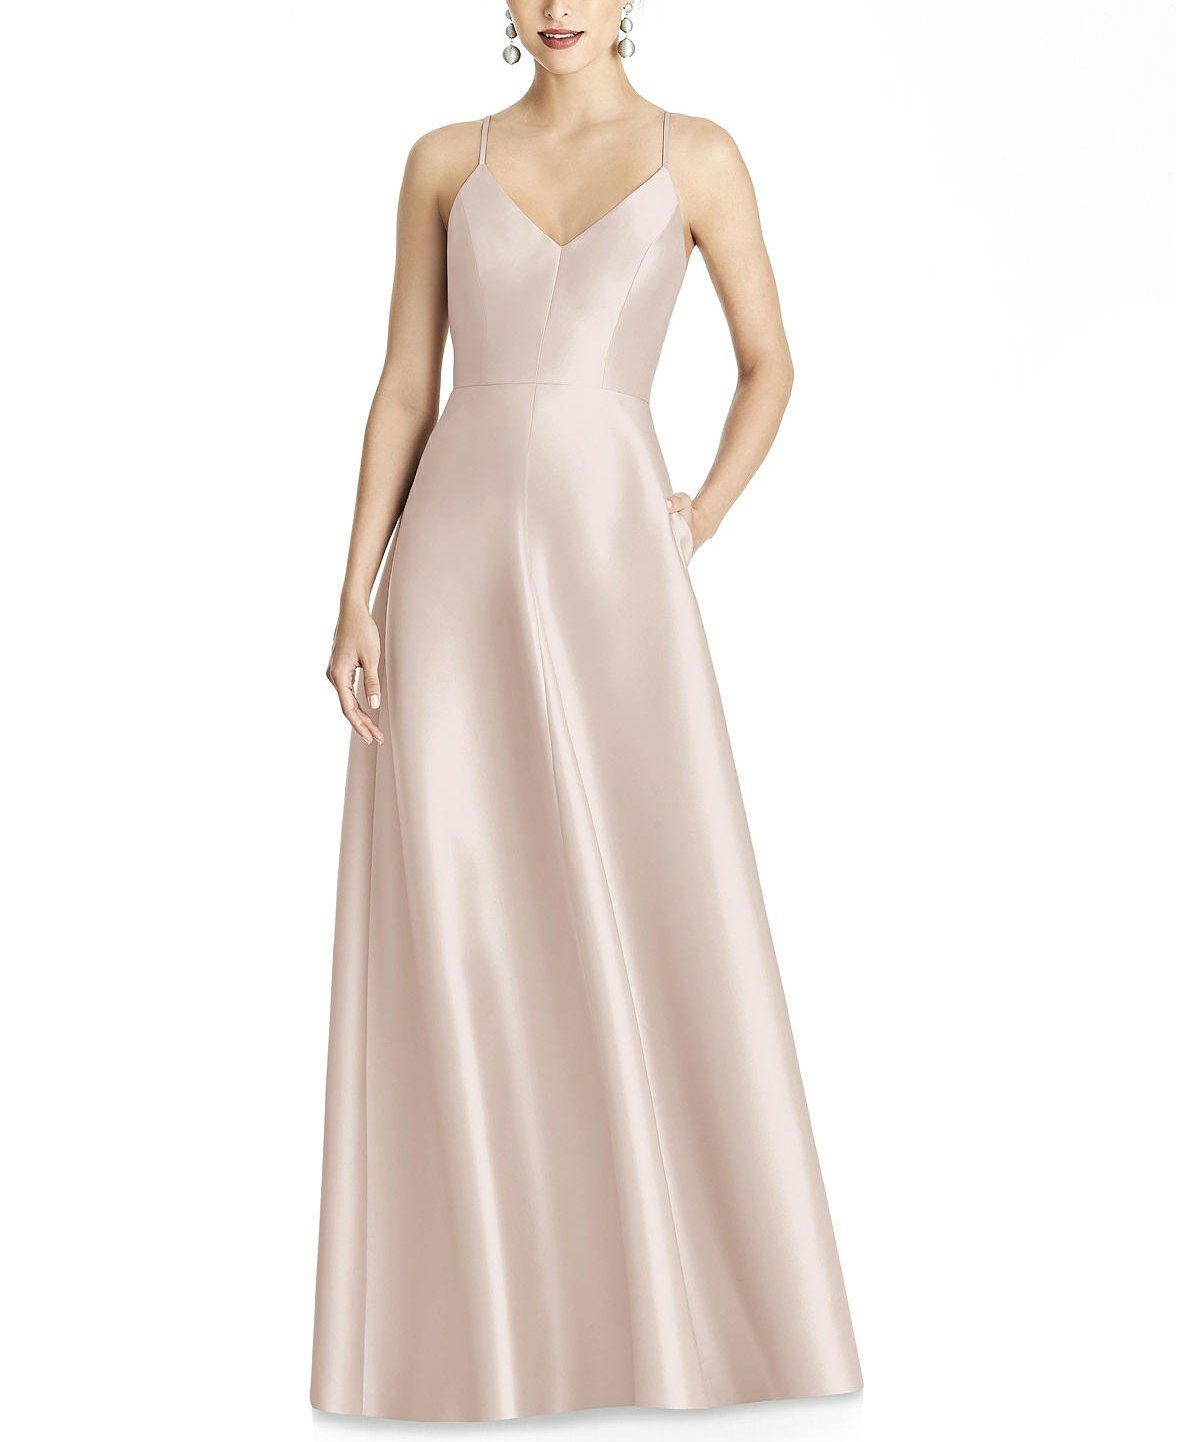 Alfred sung style d750 bridesmaid dress brideside alfred sung style d750 ombrellifo Images